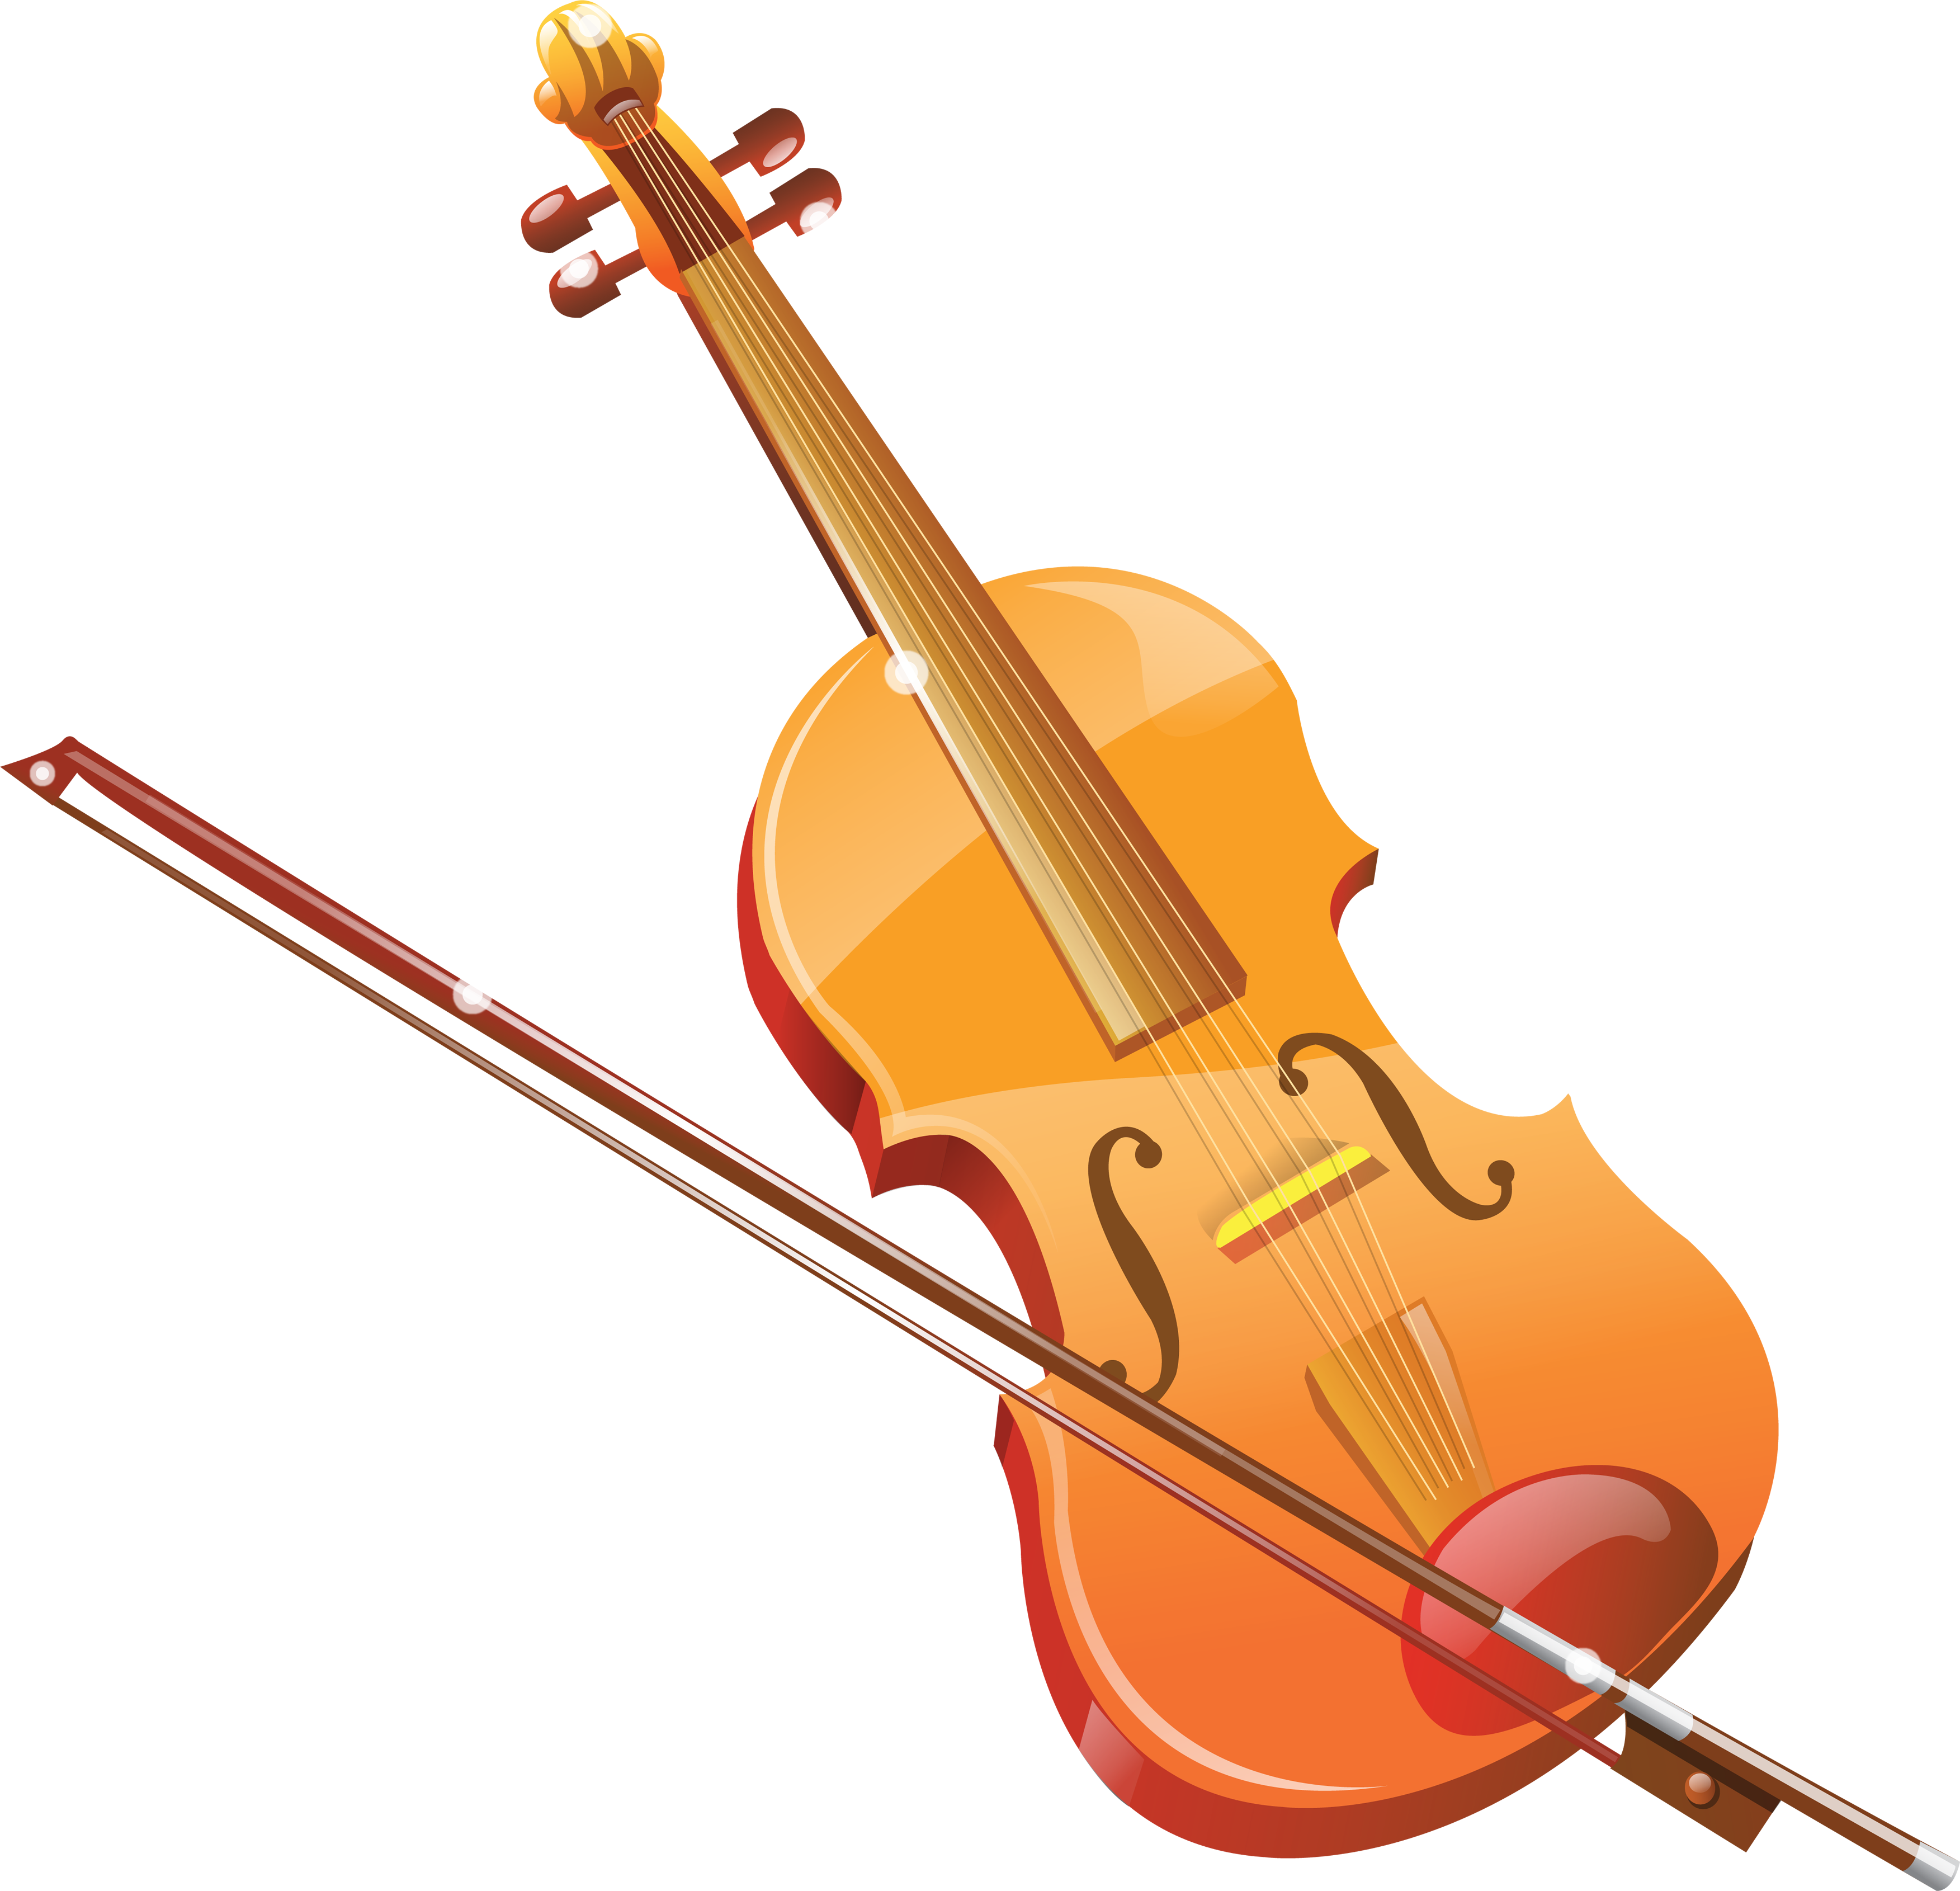 Violin png clipart image freeuse library Violin clipart transparent pencil and in color violin ... image freeuse library